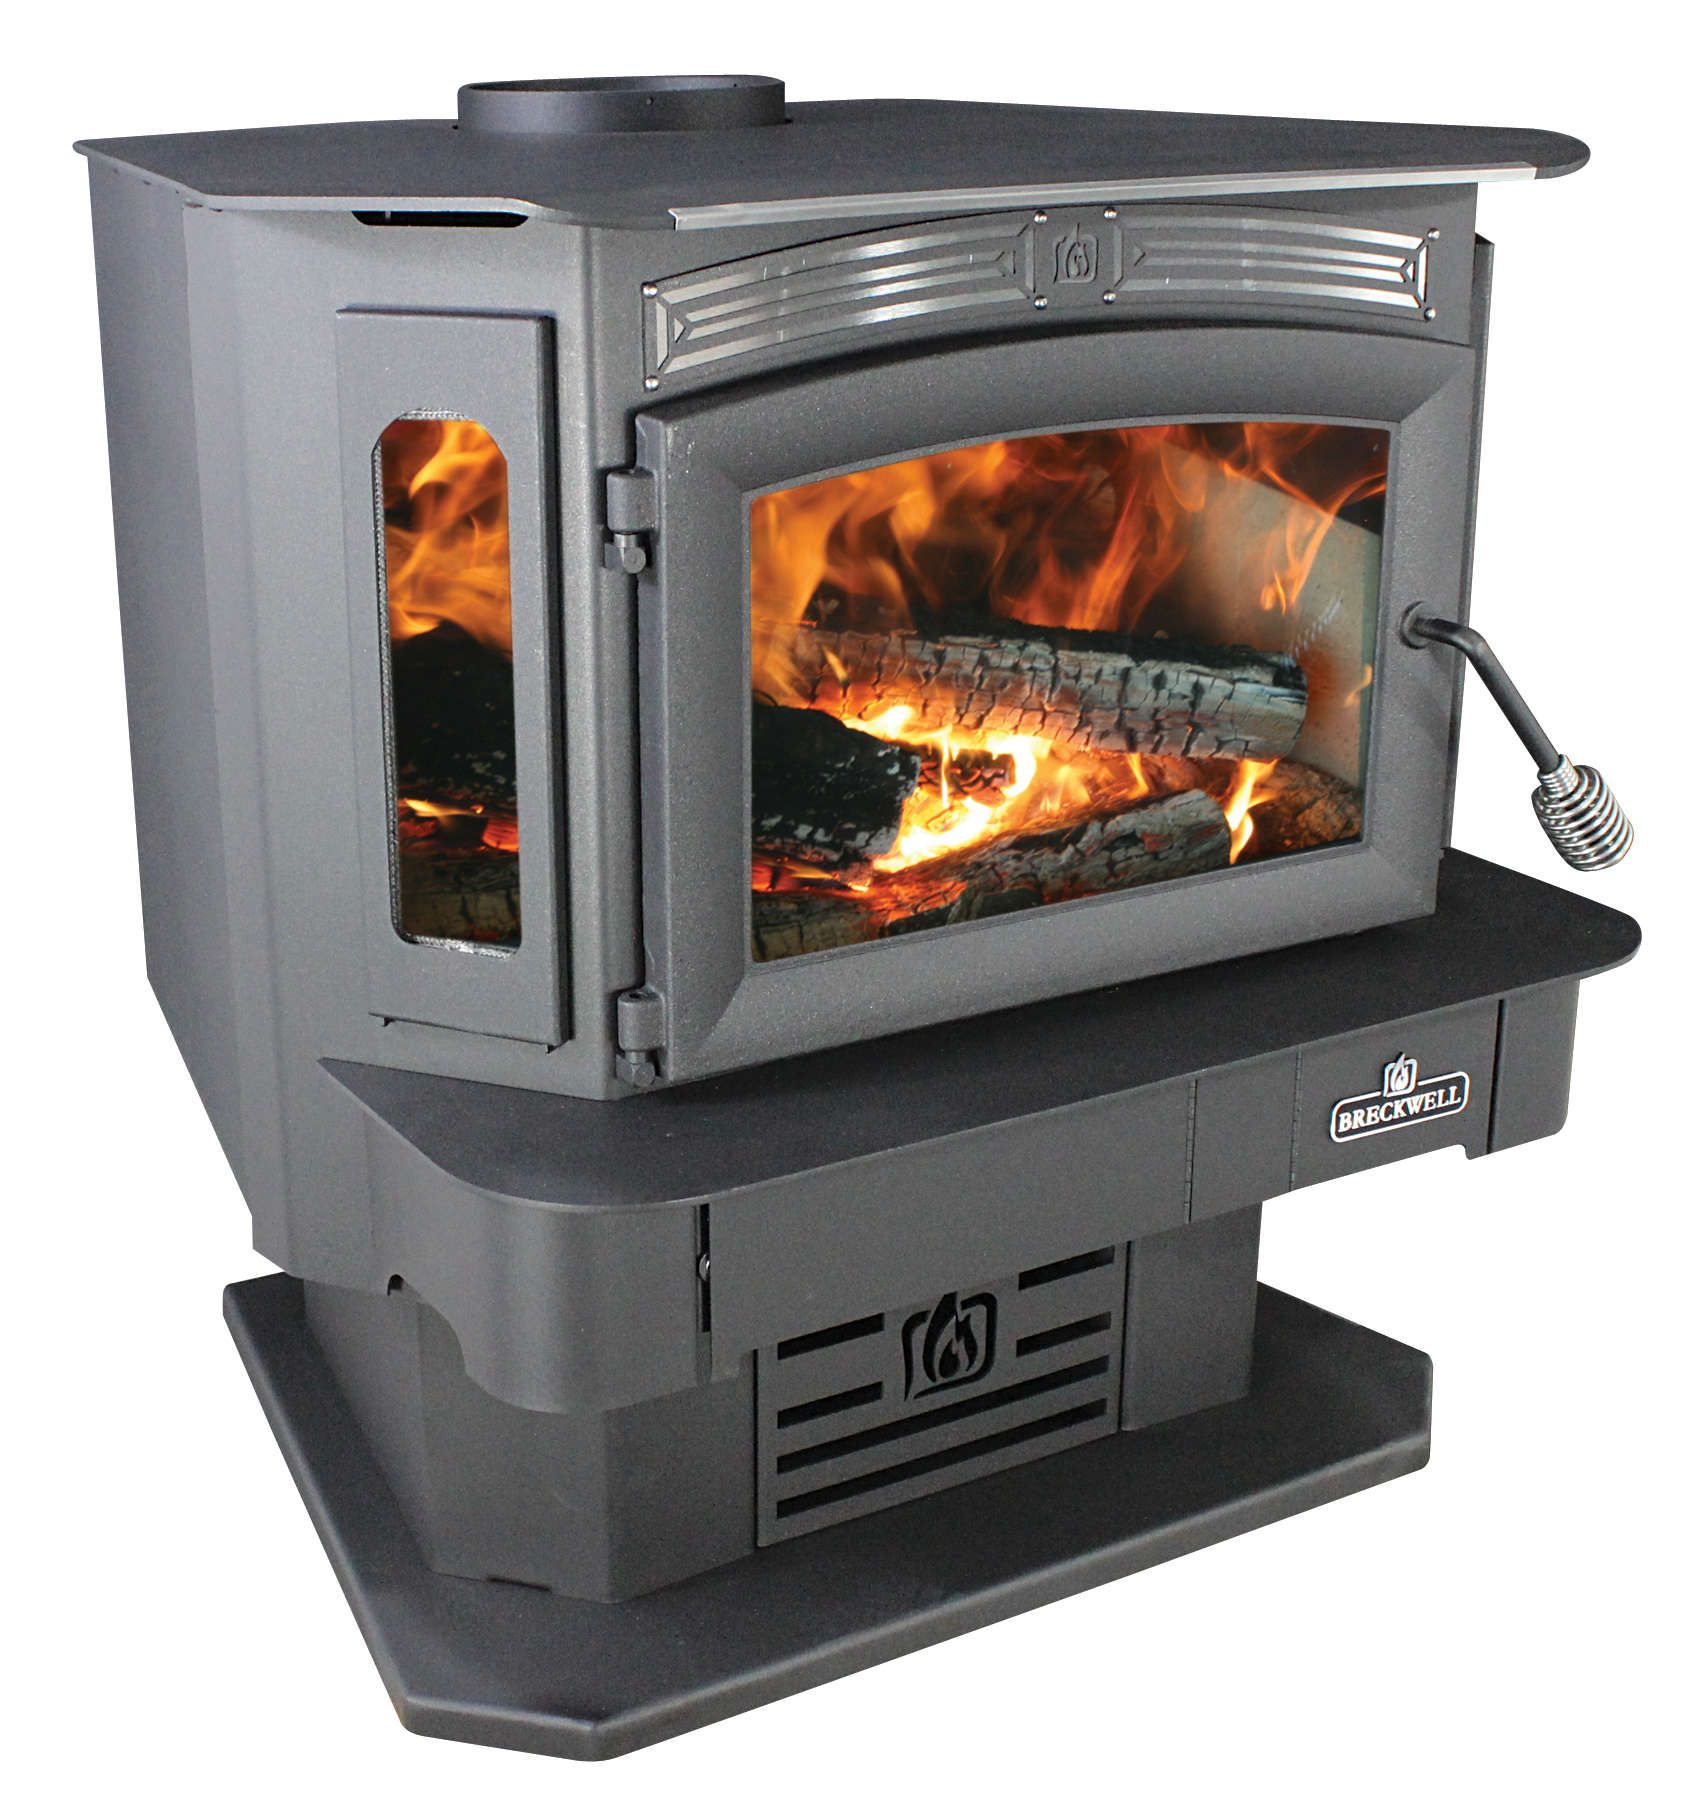 SW940P angle left wood burning stove repair & replacement parts online buck stove clayton wood furnace wiring diagram at crackthecode.co